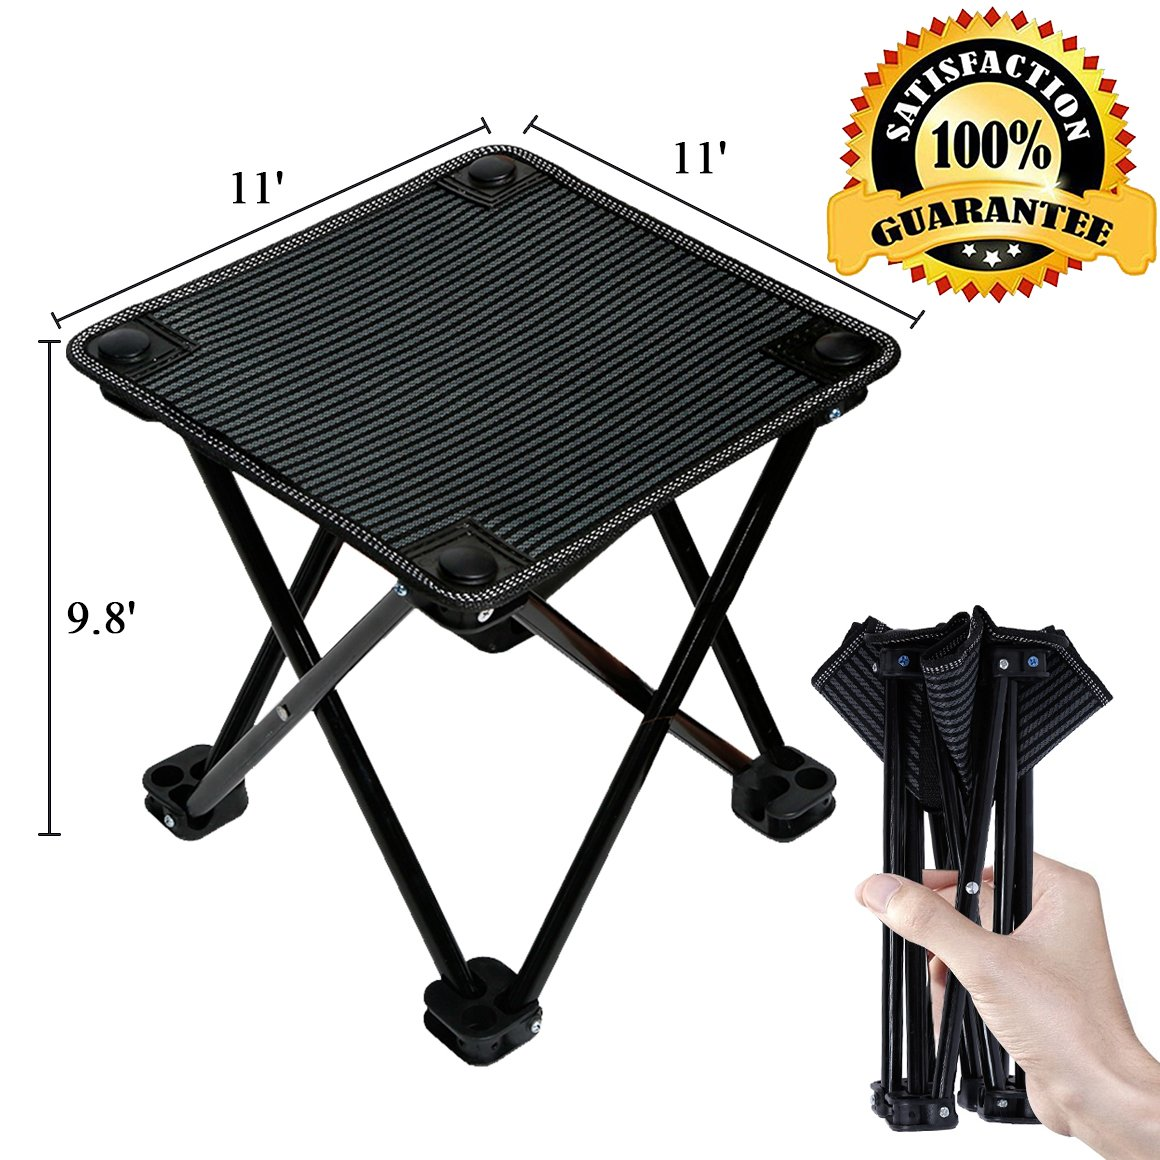 Portable Folding Stool Waterproof Ultralight Folding Chair 600D Oxford Cloth Camping Stool Aluminum Alloy Collapsible Chair for Camping Fishing Travel Hiking Picnic Barbecue 10.2 x10.2 x 9.8